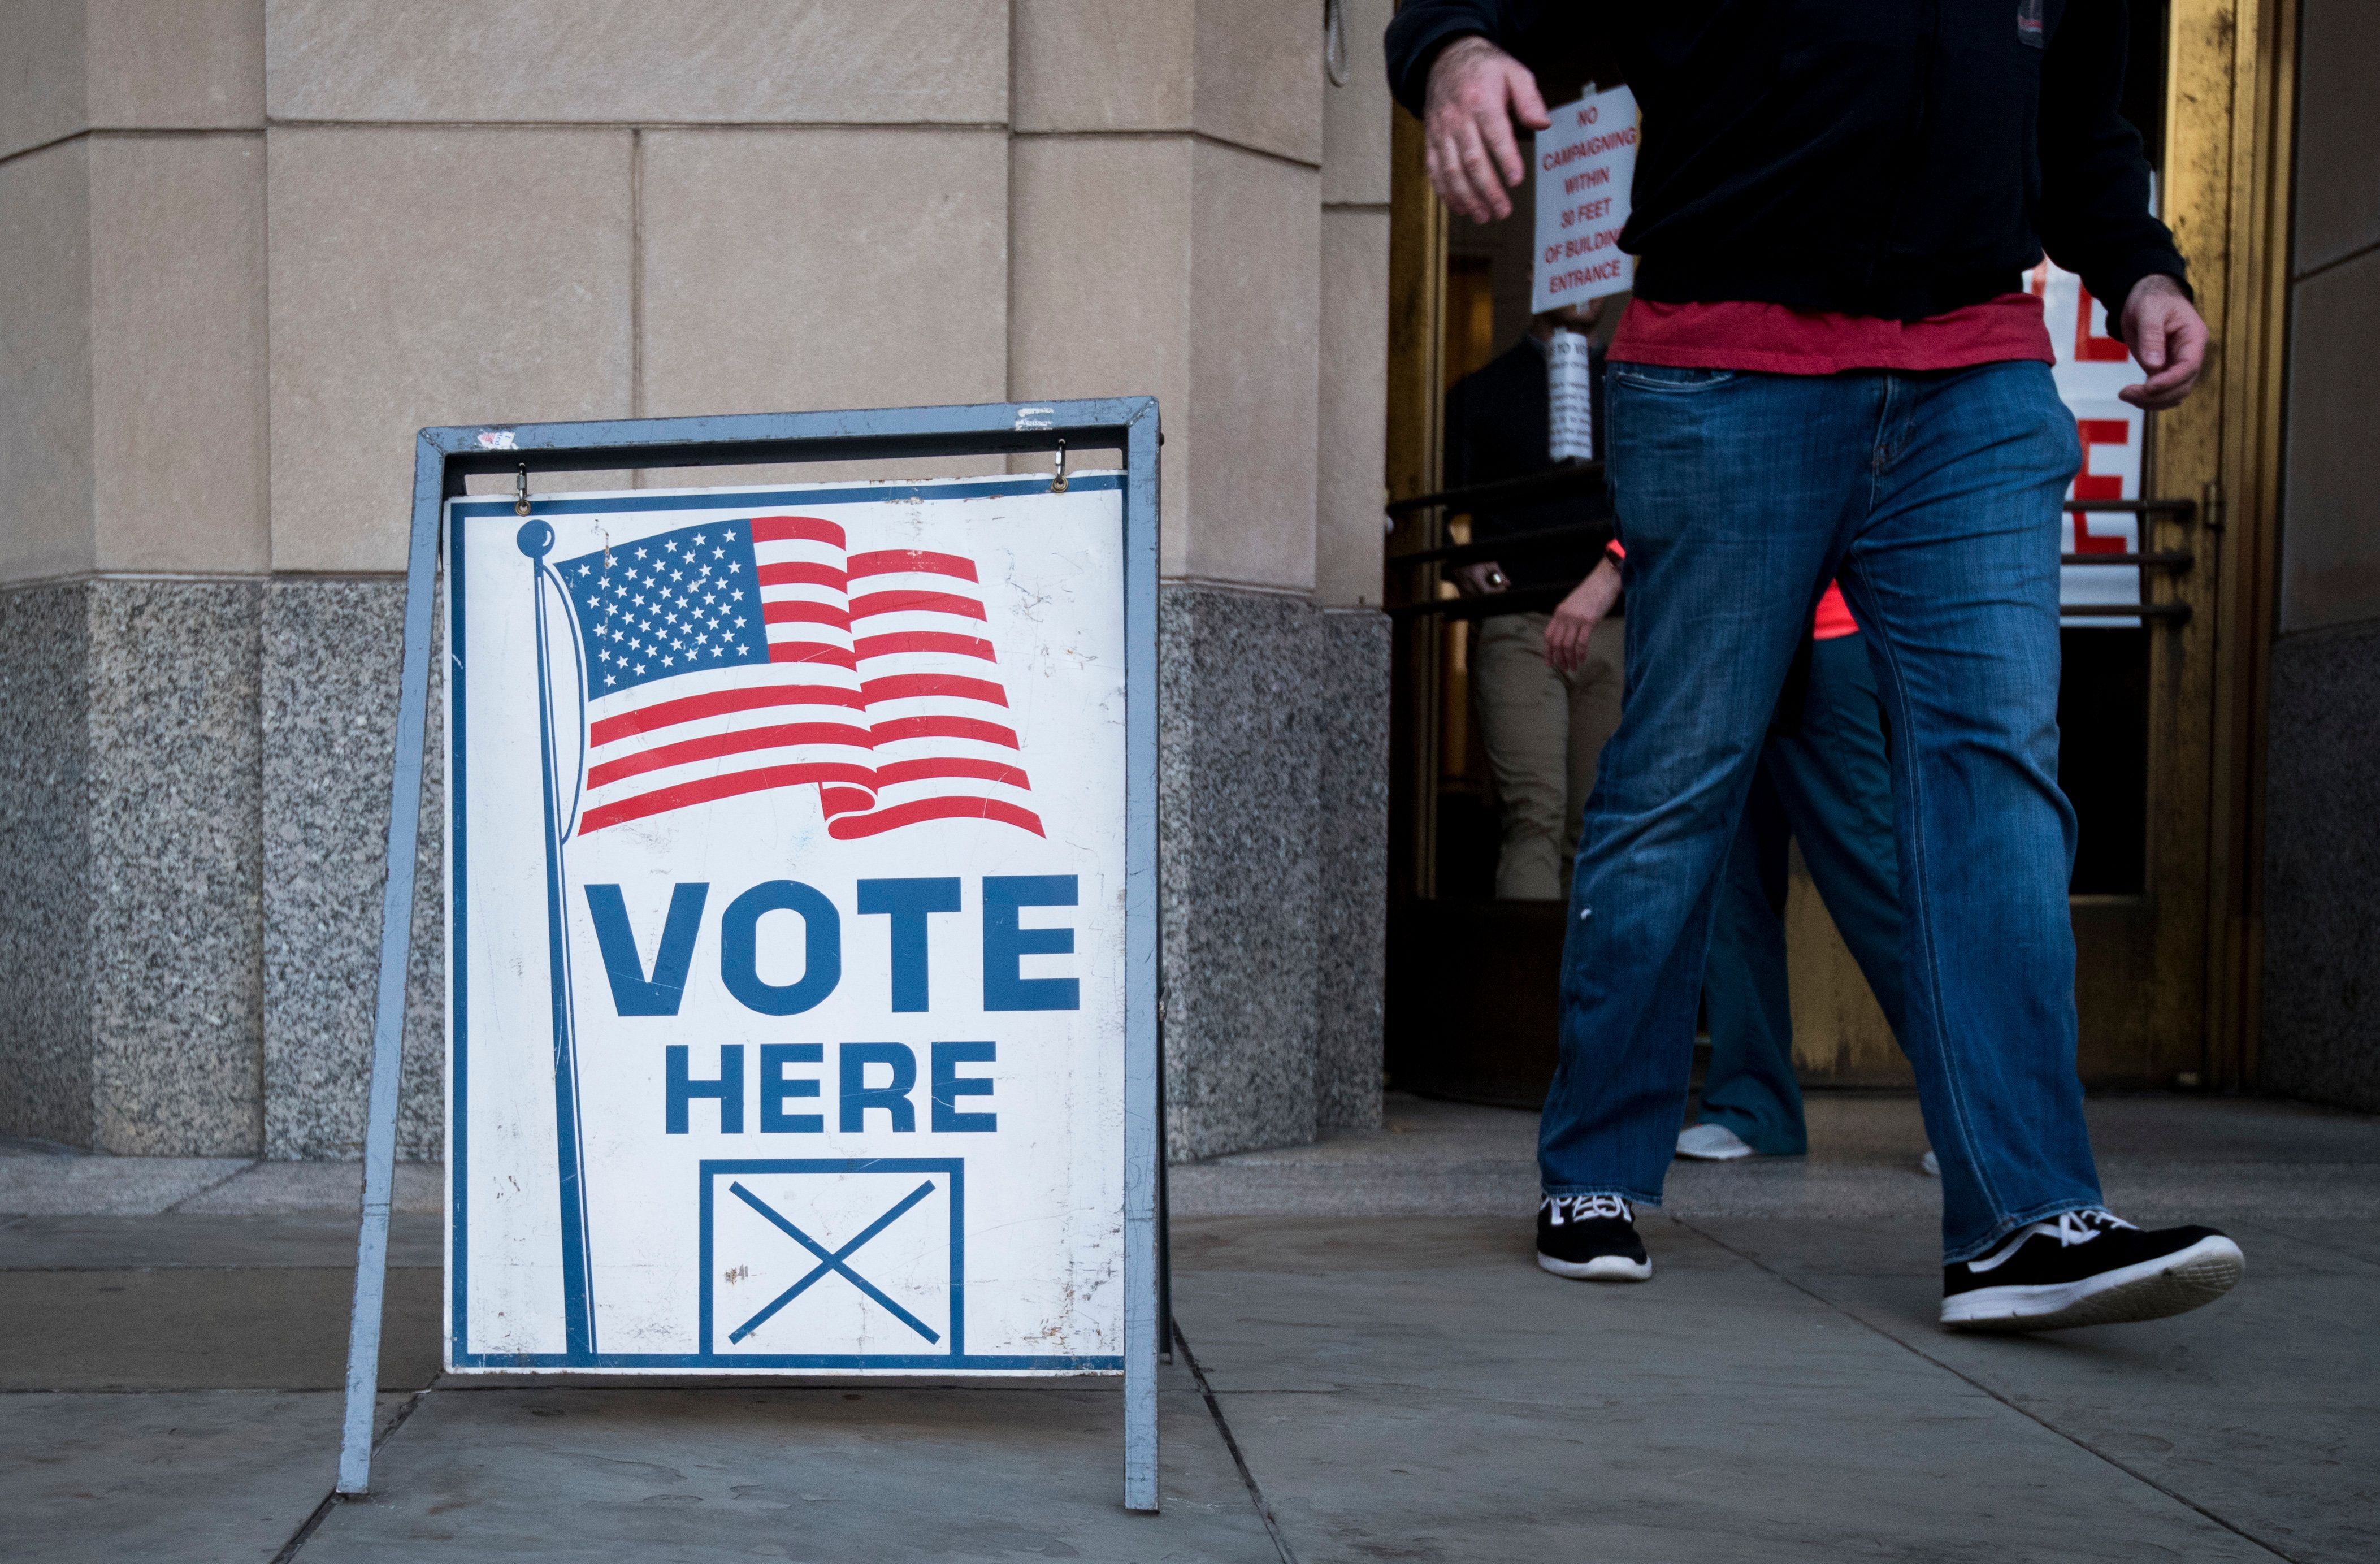 UNITED STATES - DECEMBER 11: Voters exit the polling station at the Jefferson County Courthouse in Birmingham, Ala., on Tuesday, Dec. 12, 2017, after voting in the special election to fill Jeff Sessions' seat in the U.S. Senate. (Photo By Bill Clark/CQ Roll Call)